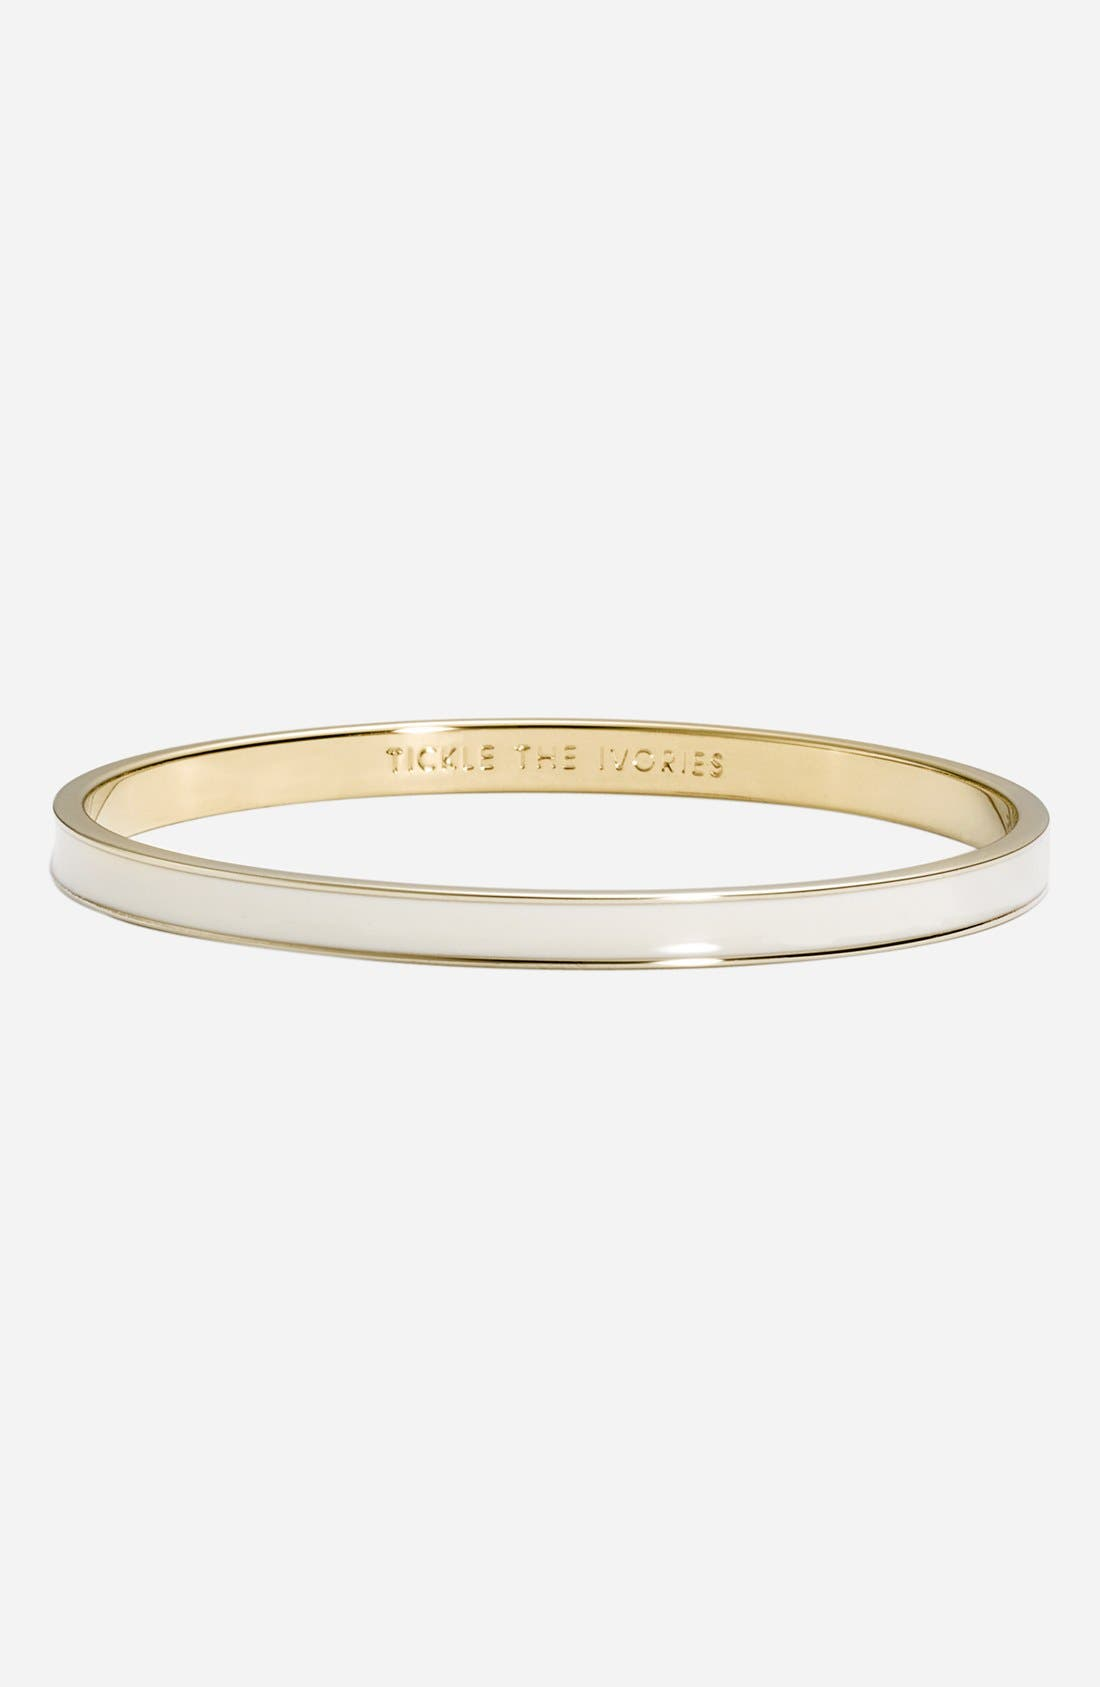 Alternate Image 1 Selected - kate spade new york 'idiom - hot to trot' ultra thin enamel bangle